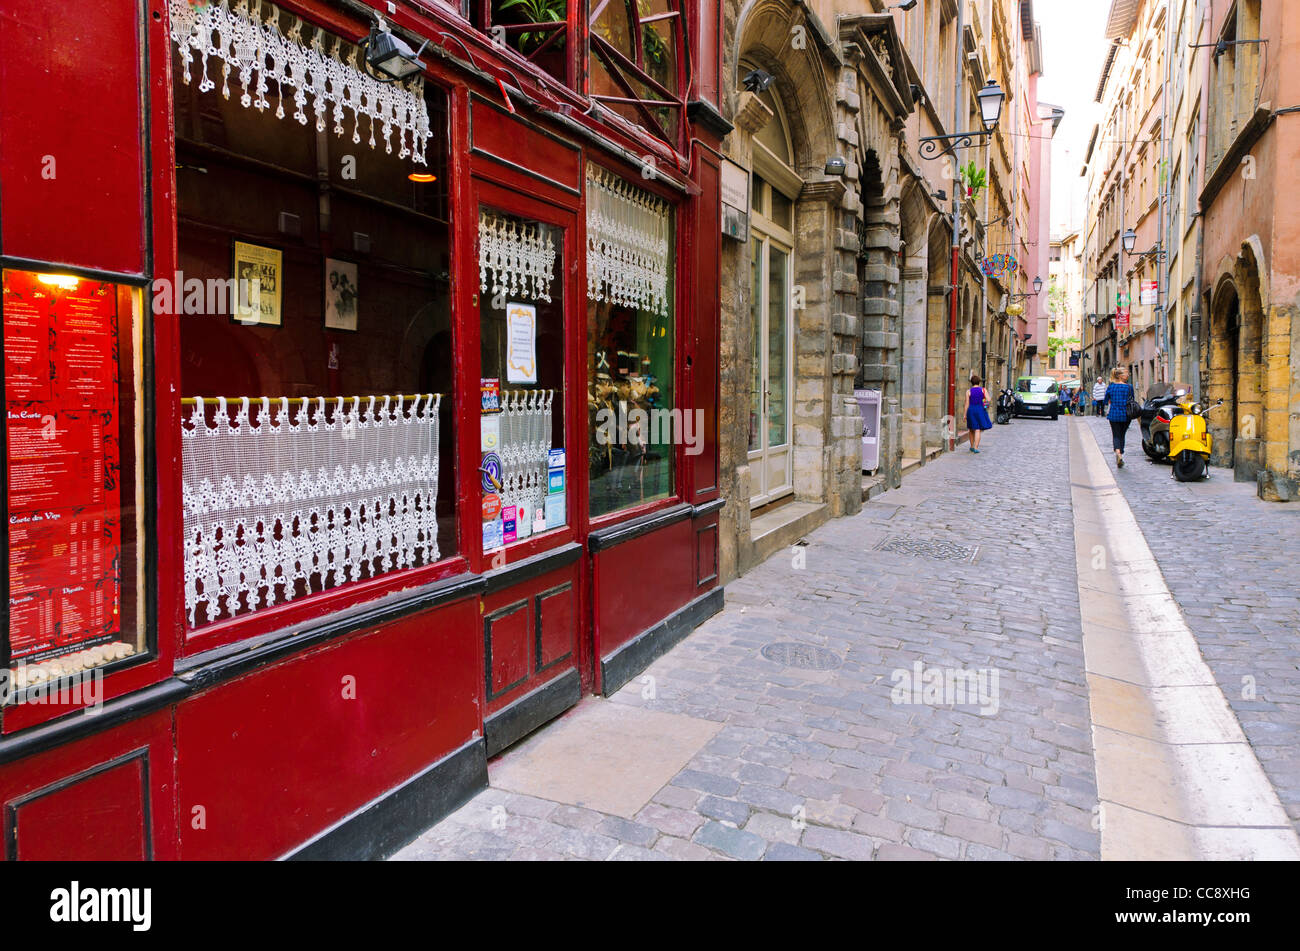 le tire bouchon restaurant in old town vieux lyon france unesco stock photo royalty free. Black Bedroom Furniture Sets. Home Design Ideas